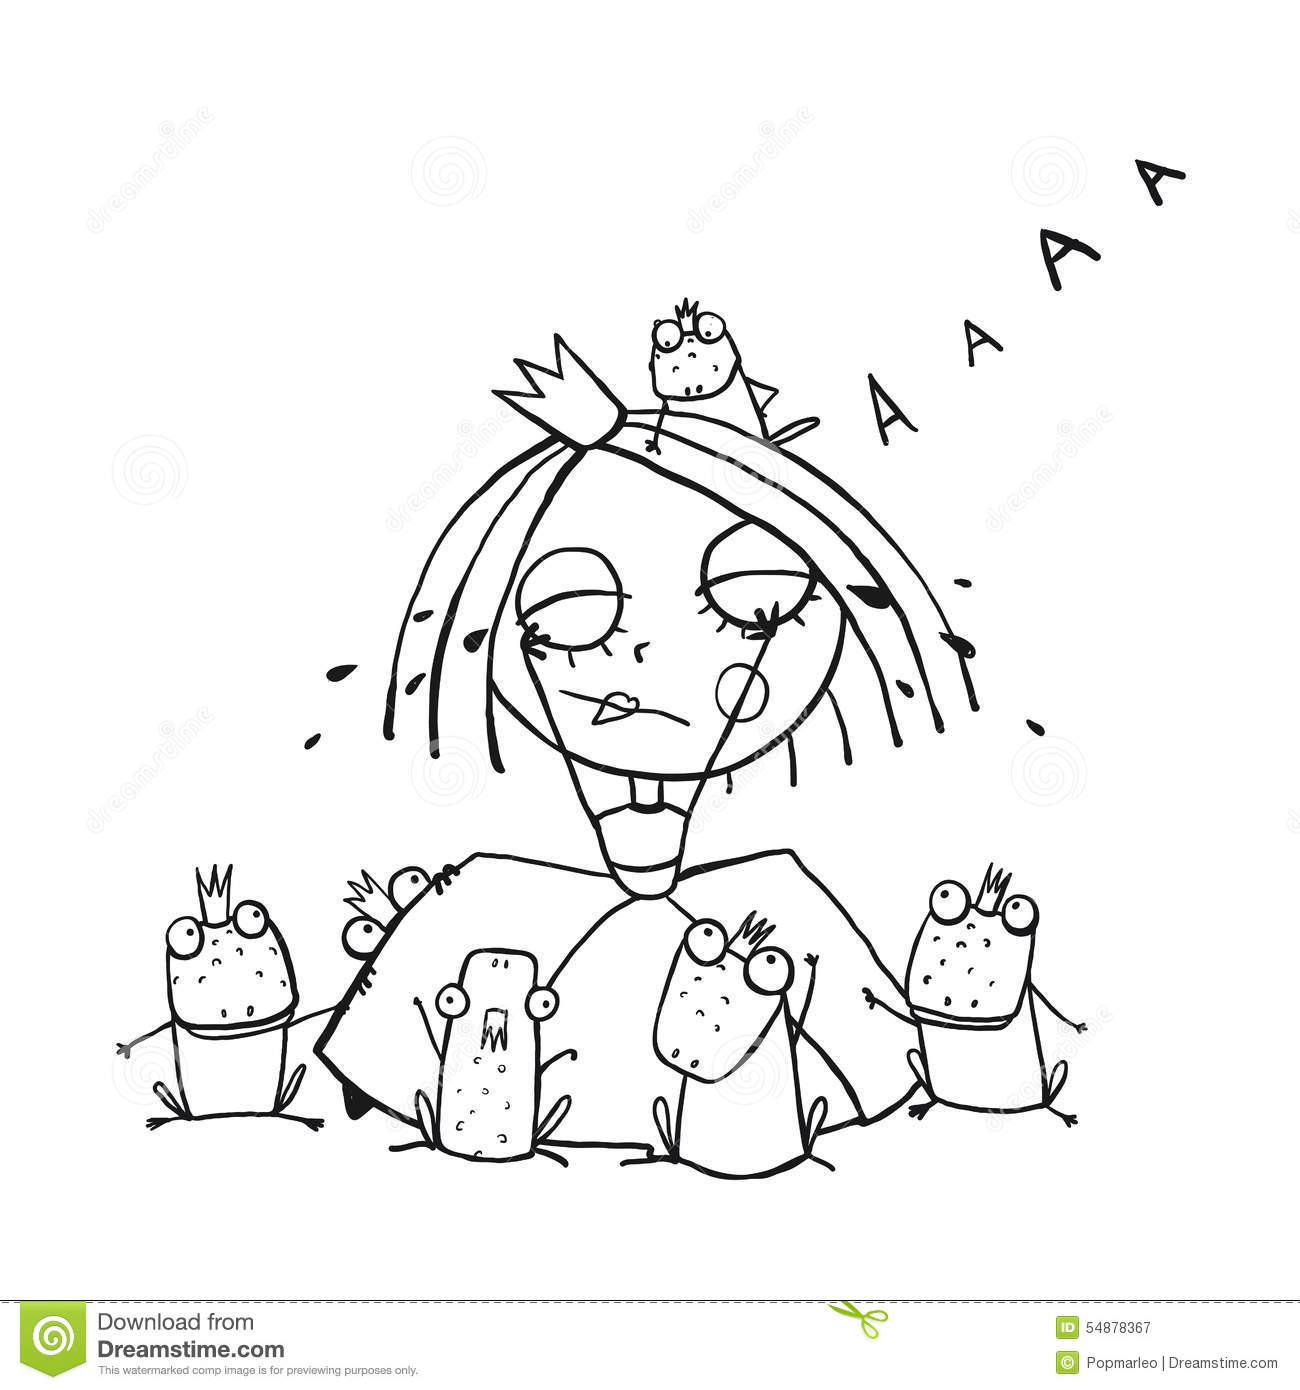 princess crying and many prince frogs coloring stock vector image 54878367 Devil Frog Screaming Cat